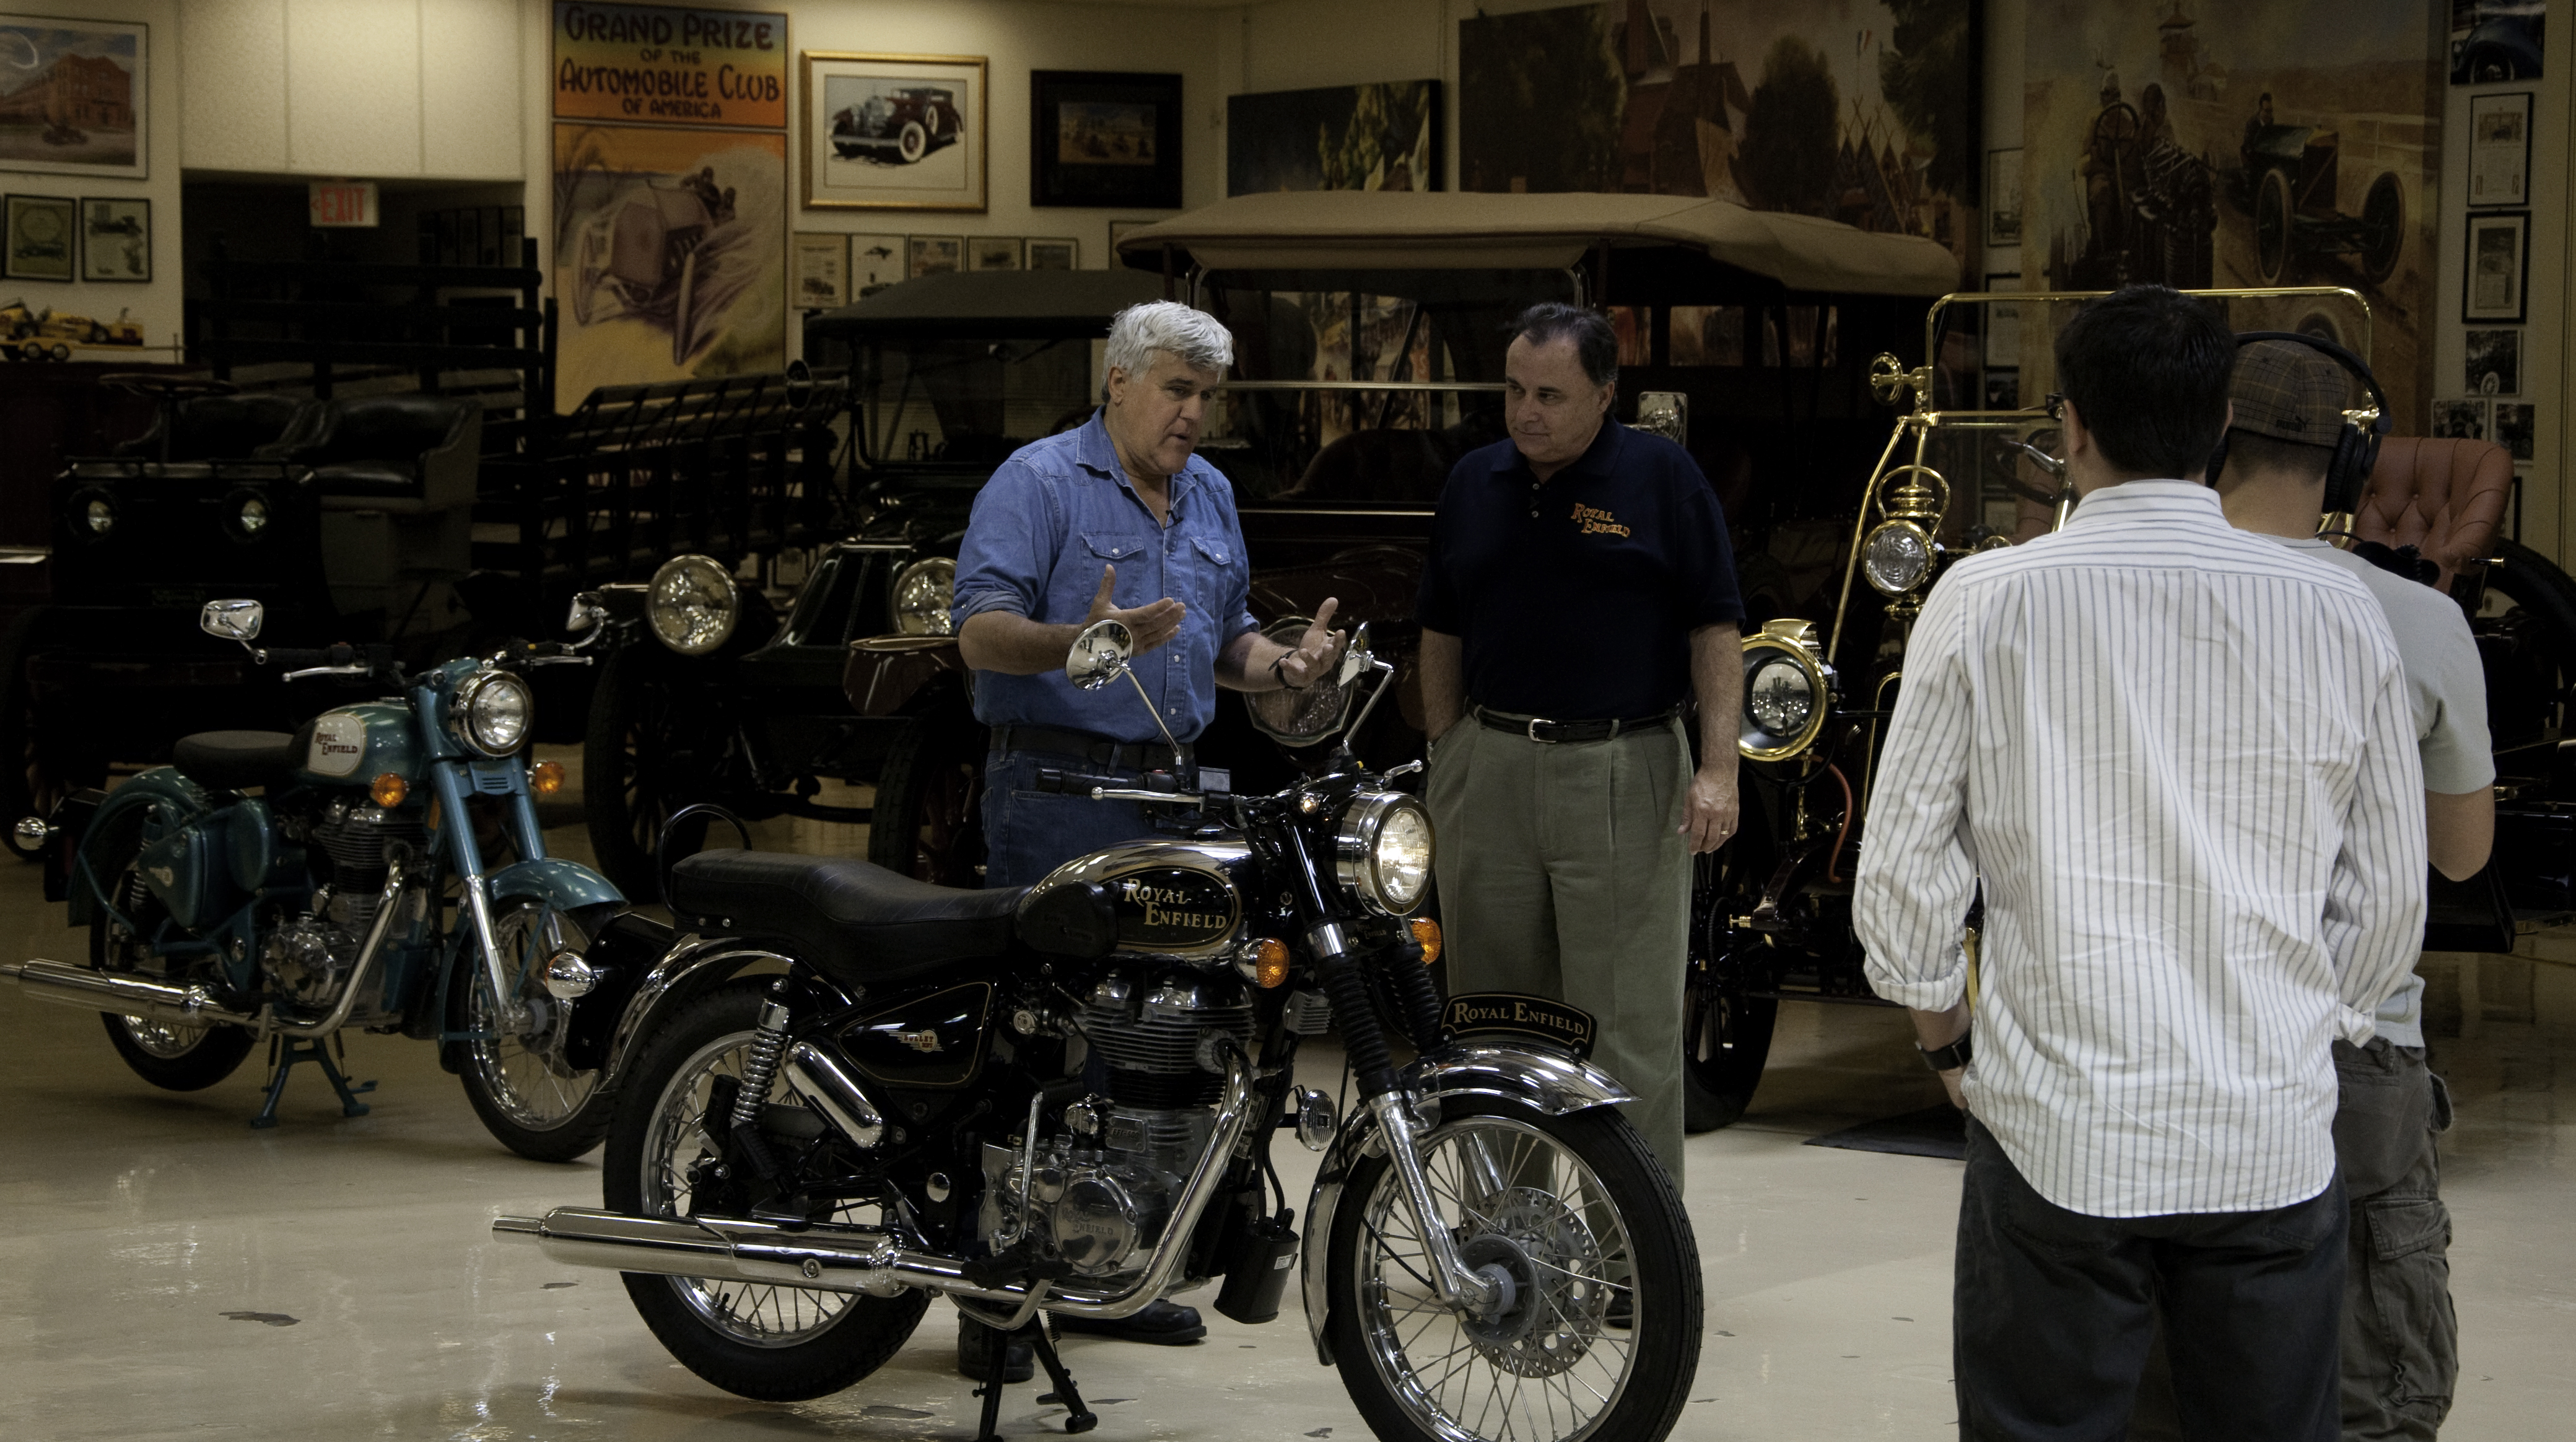 051711-leno-royal-enfield-1